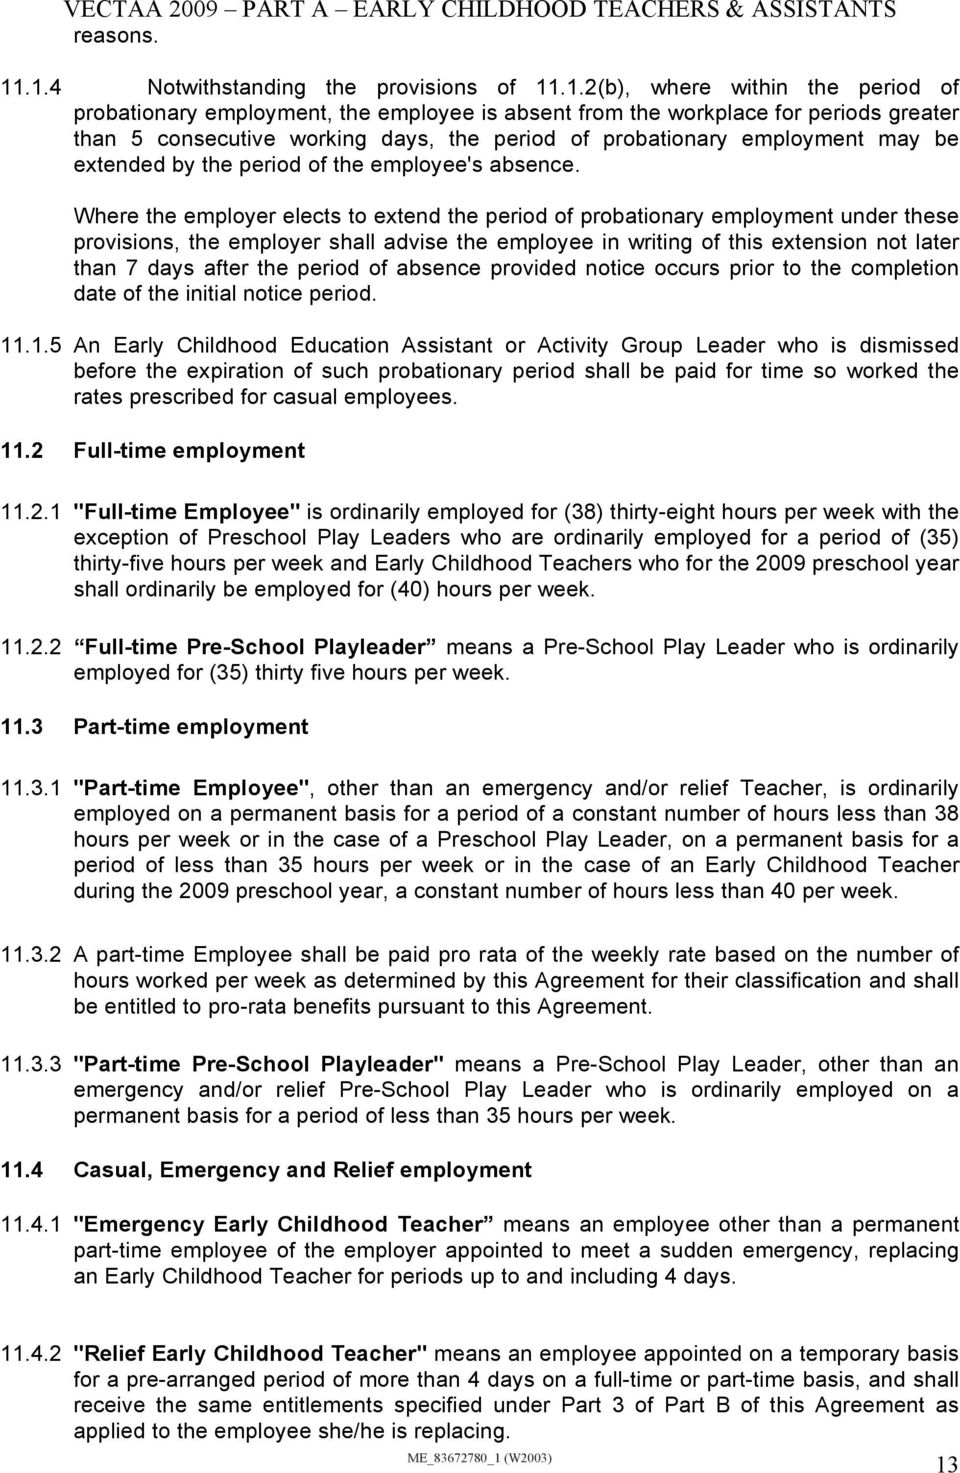 Vectaa 2009 part a early childhood teachers assistants victorian the period of probationary employment may be extended by the period of the employees absence platinumwayz